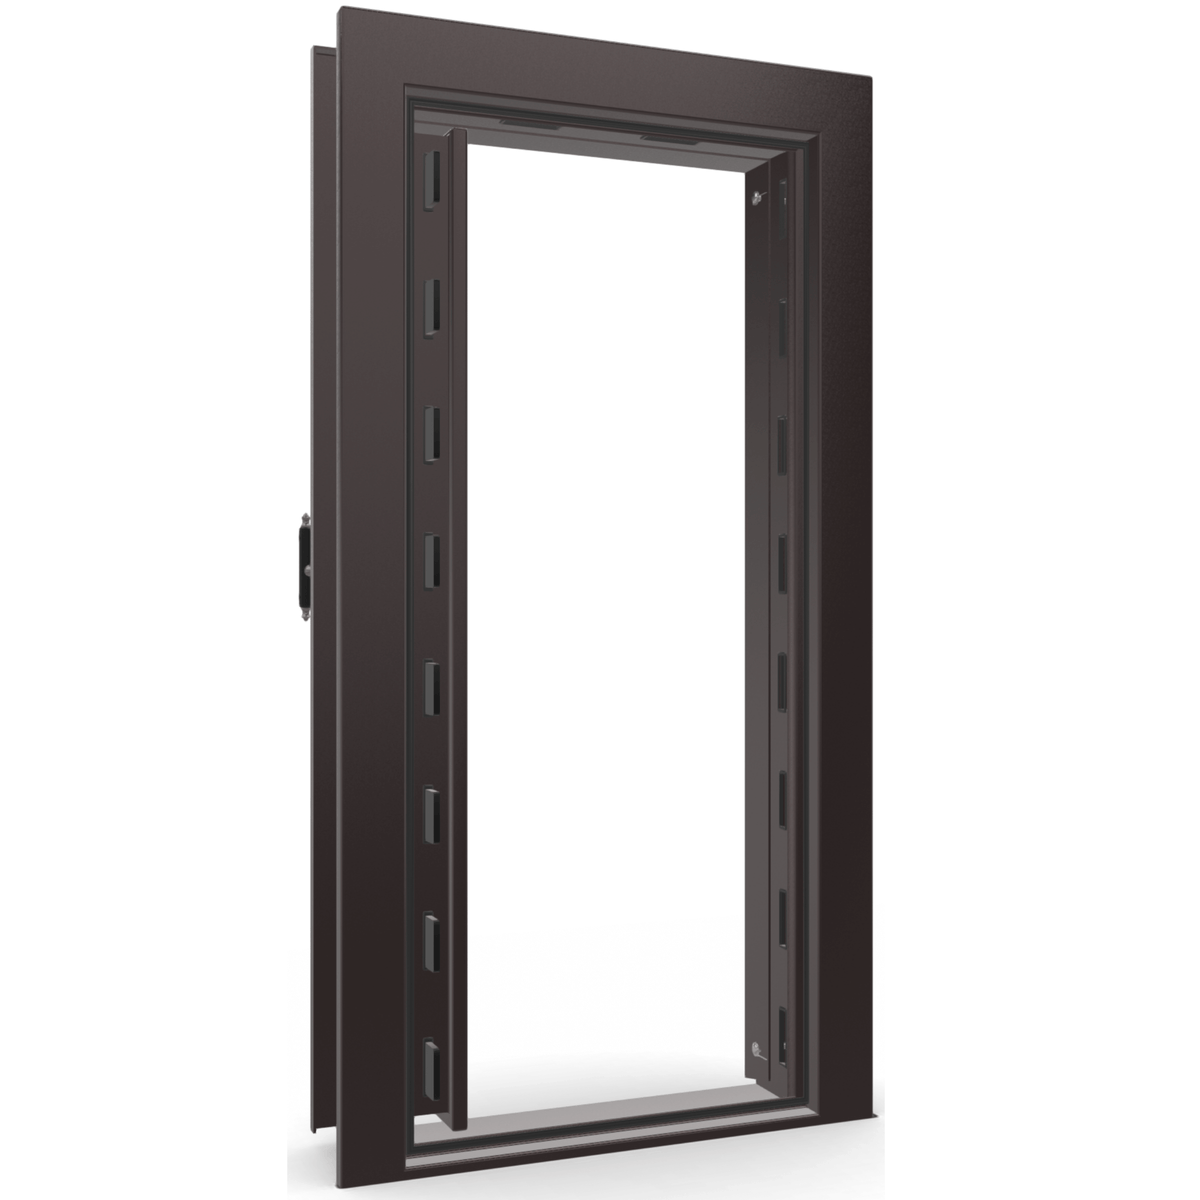 "Vault Door Left Inswing | Black Cherry Gloss | Black Electronic Lock | 81-85""(H) x 27-42""(W) x 7-10""(D)"